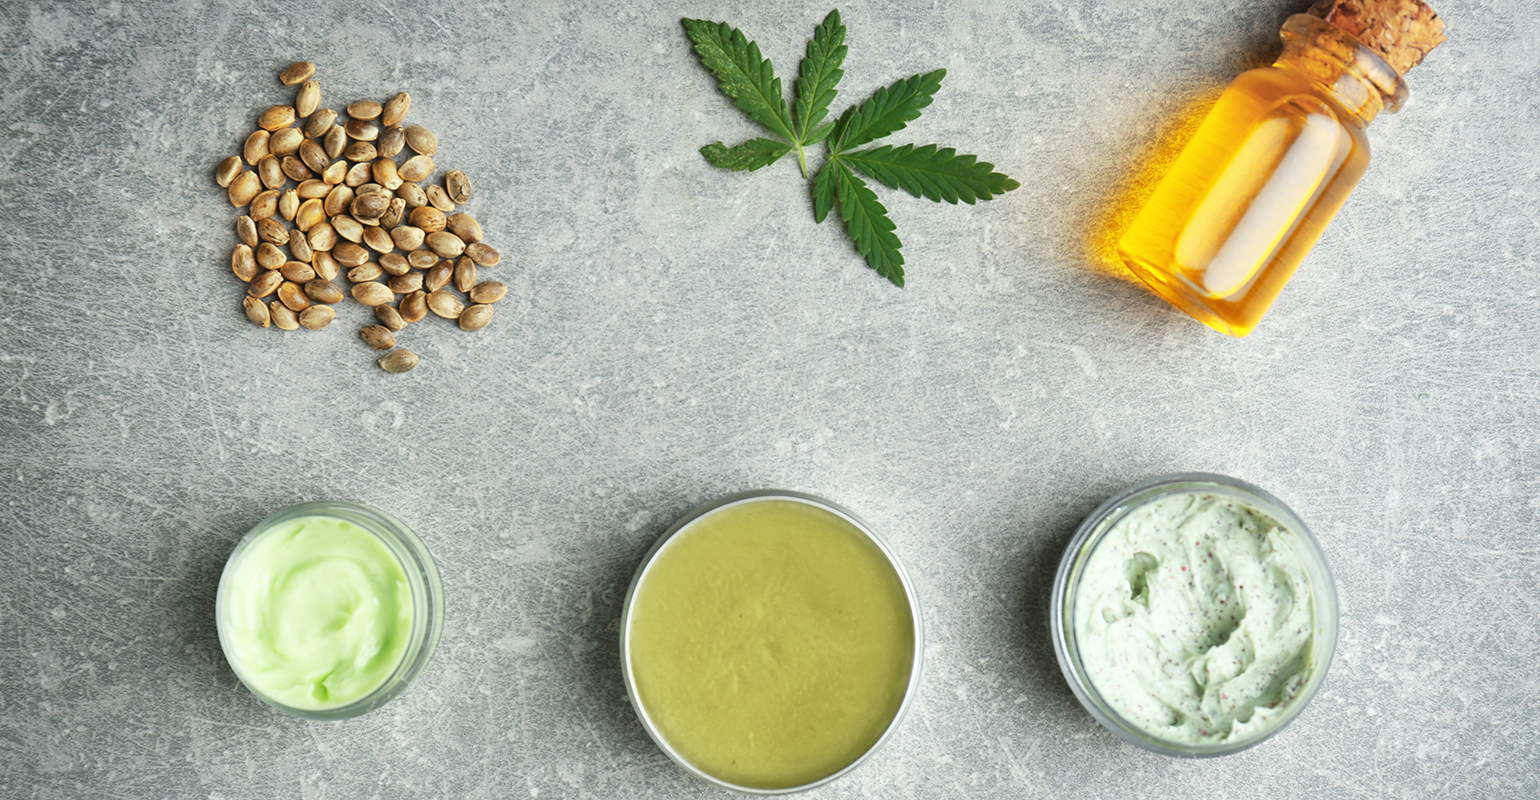 Regulation of different CBD product types